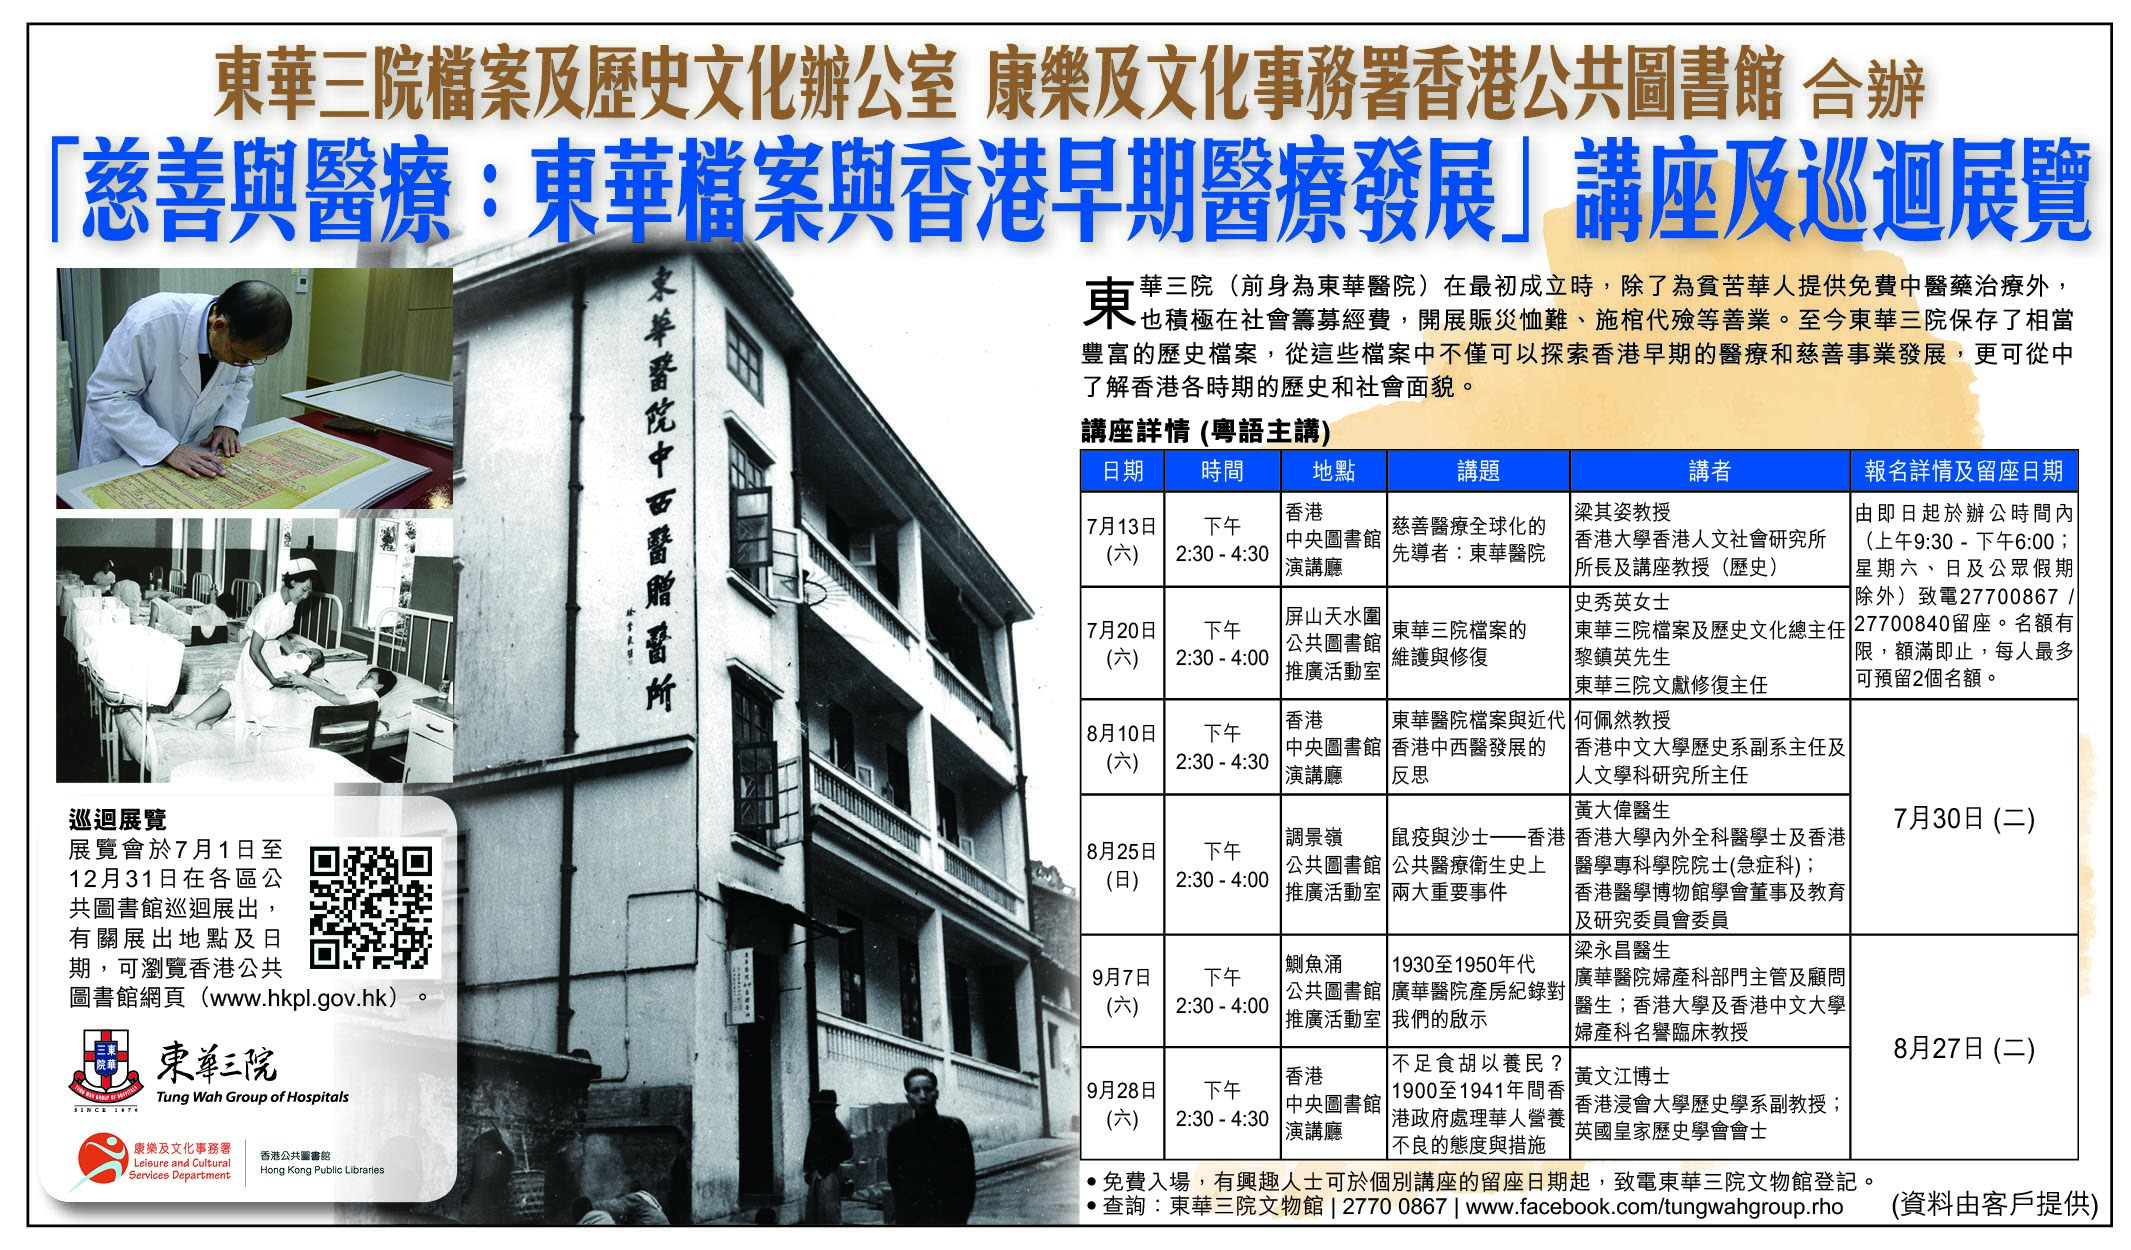 """Advertisement for subject talks and roving exhibitions in """"Charity and Healthcare: Tung Wah Archives and Hong Kong's Early Healthcare Development""""- AM730 (2019.7.2)"""